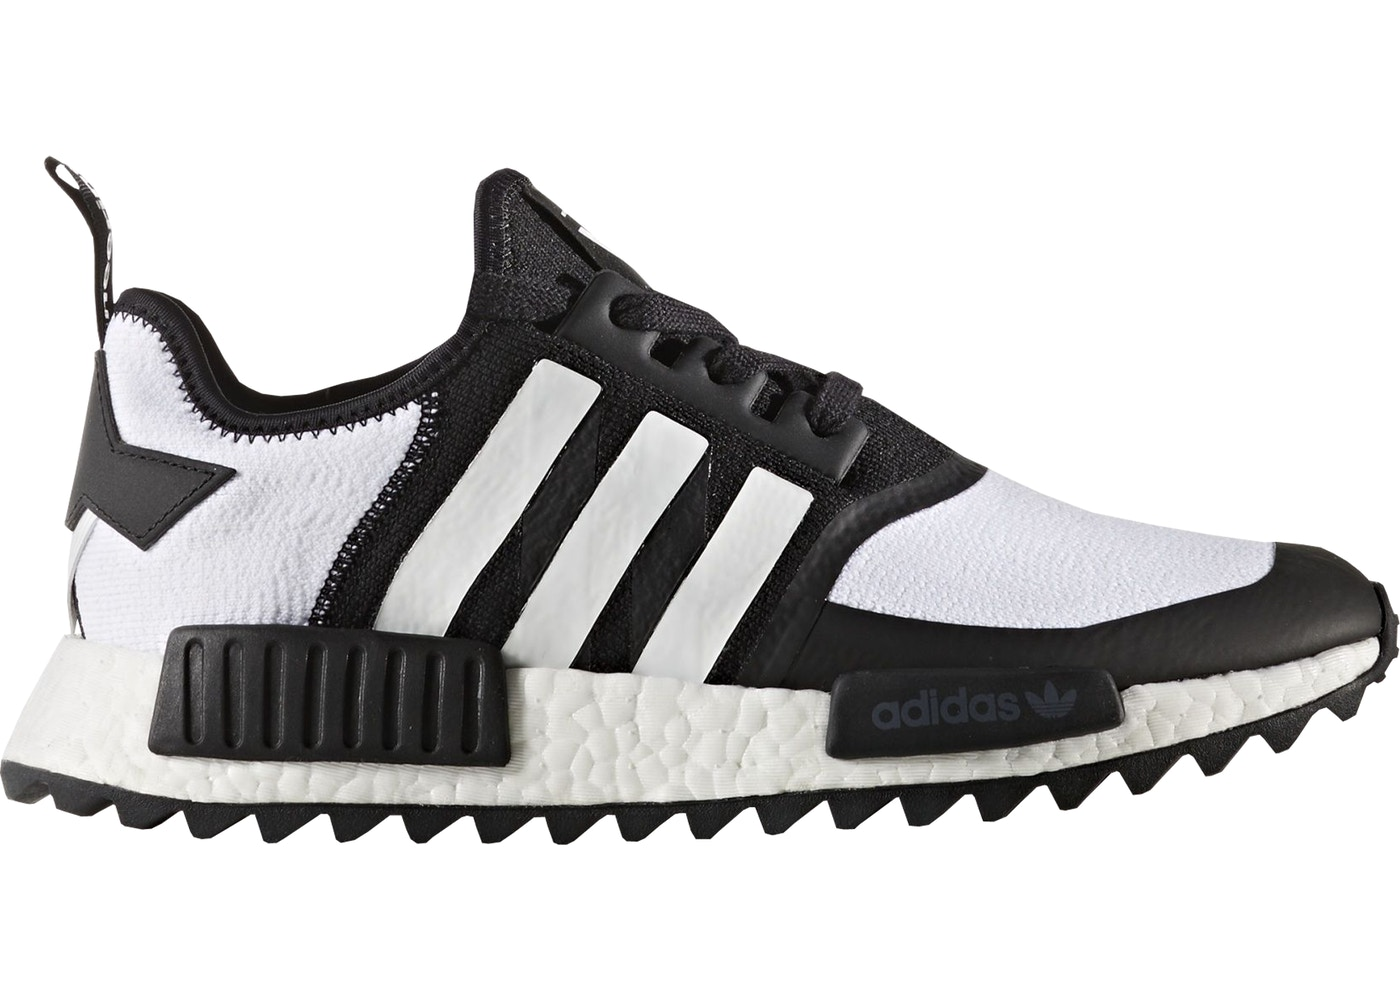 adidas NMD R1 Schuhe New Lowest Asks